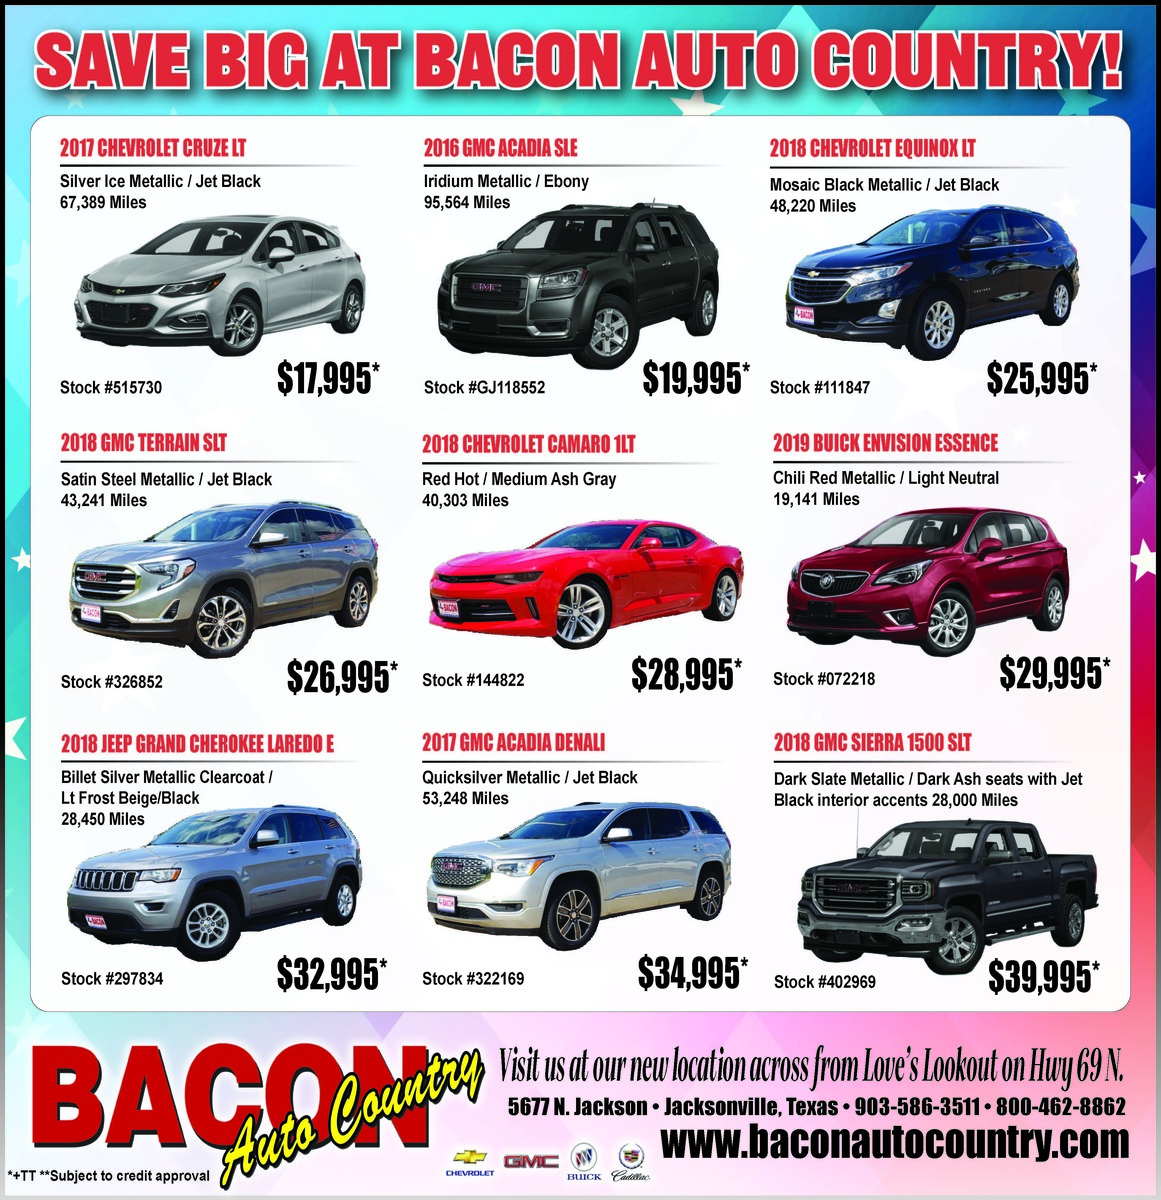 Save Big At Bacon Auto Country